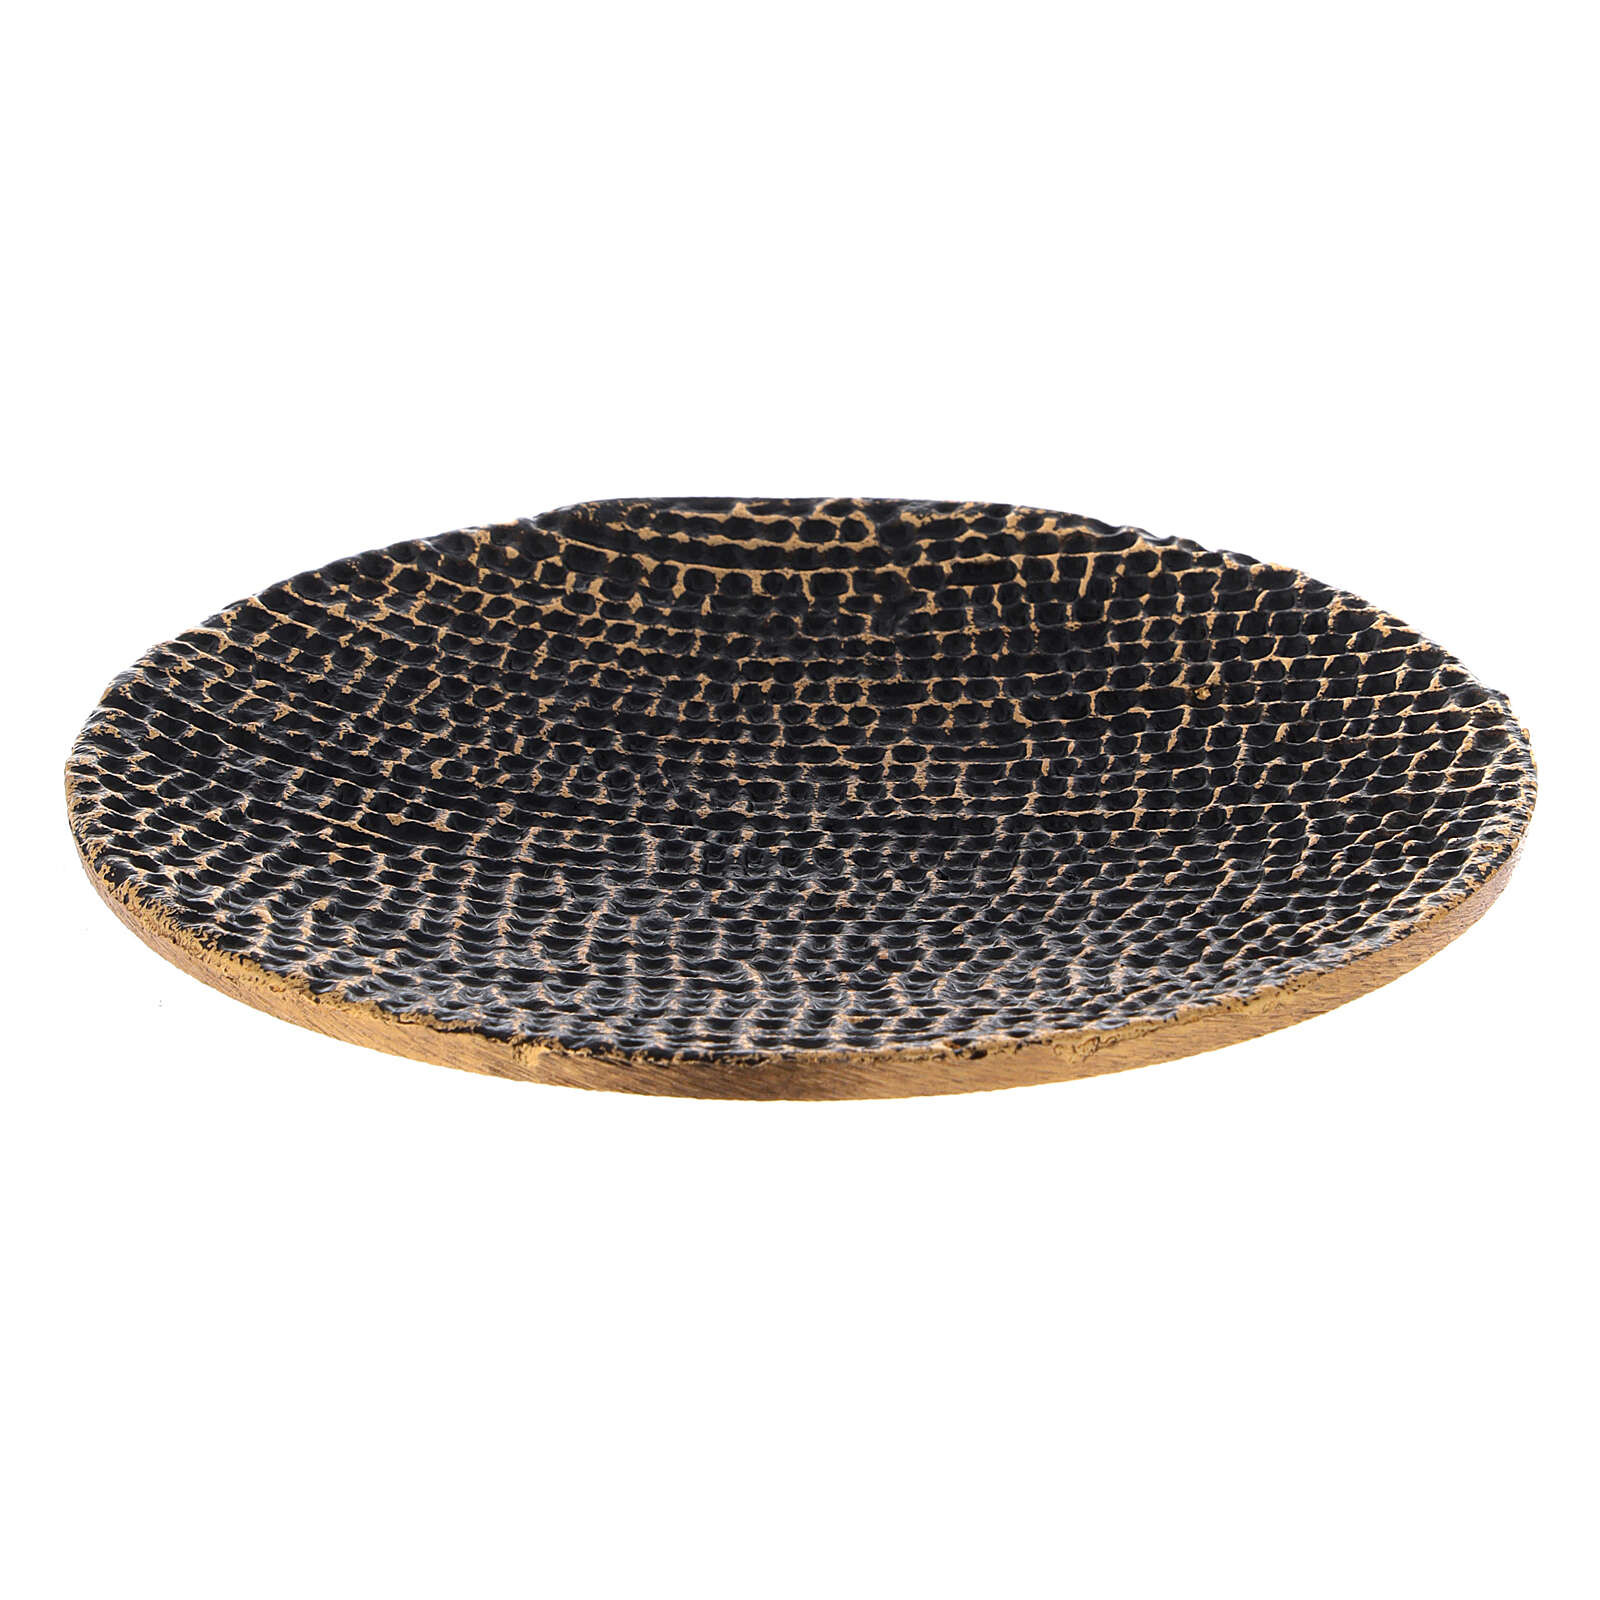 Honeycomb candle holder plate black and gold diameter 5 1/2 in 3